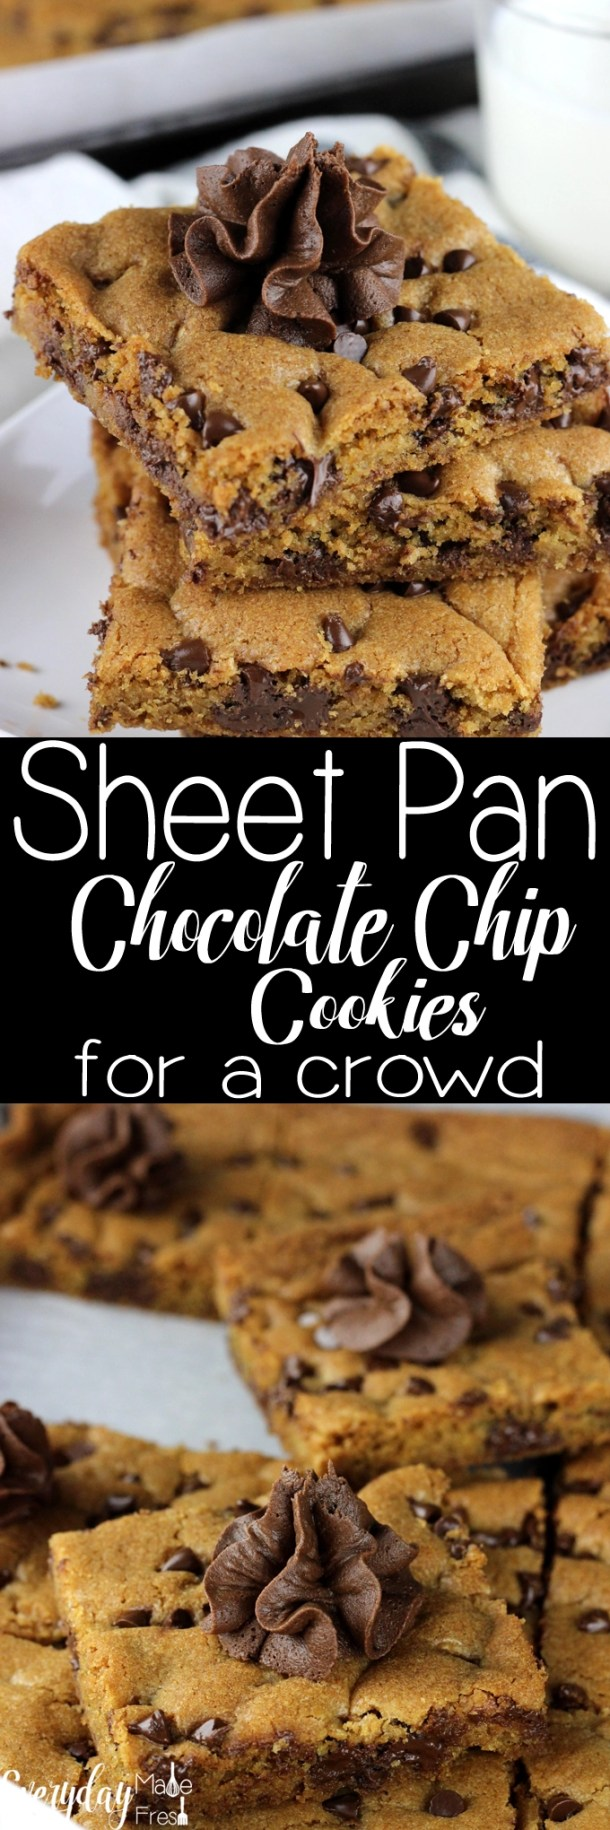 Feeding warm cookies to a crowd can sometimes take a while since you are limited to how many you can bake at one time. However, with these Sheet Pan Chocolate Chip Cookies for a Crowd, we've eliminated that problem. 24 warm cookies all on one pan! | EverydayMadeFresh.com